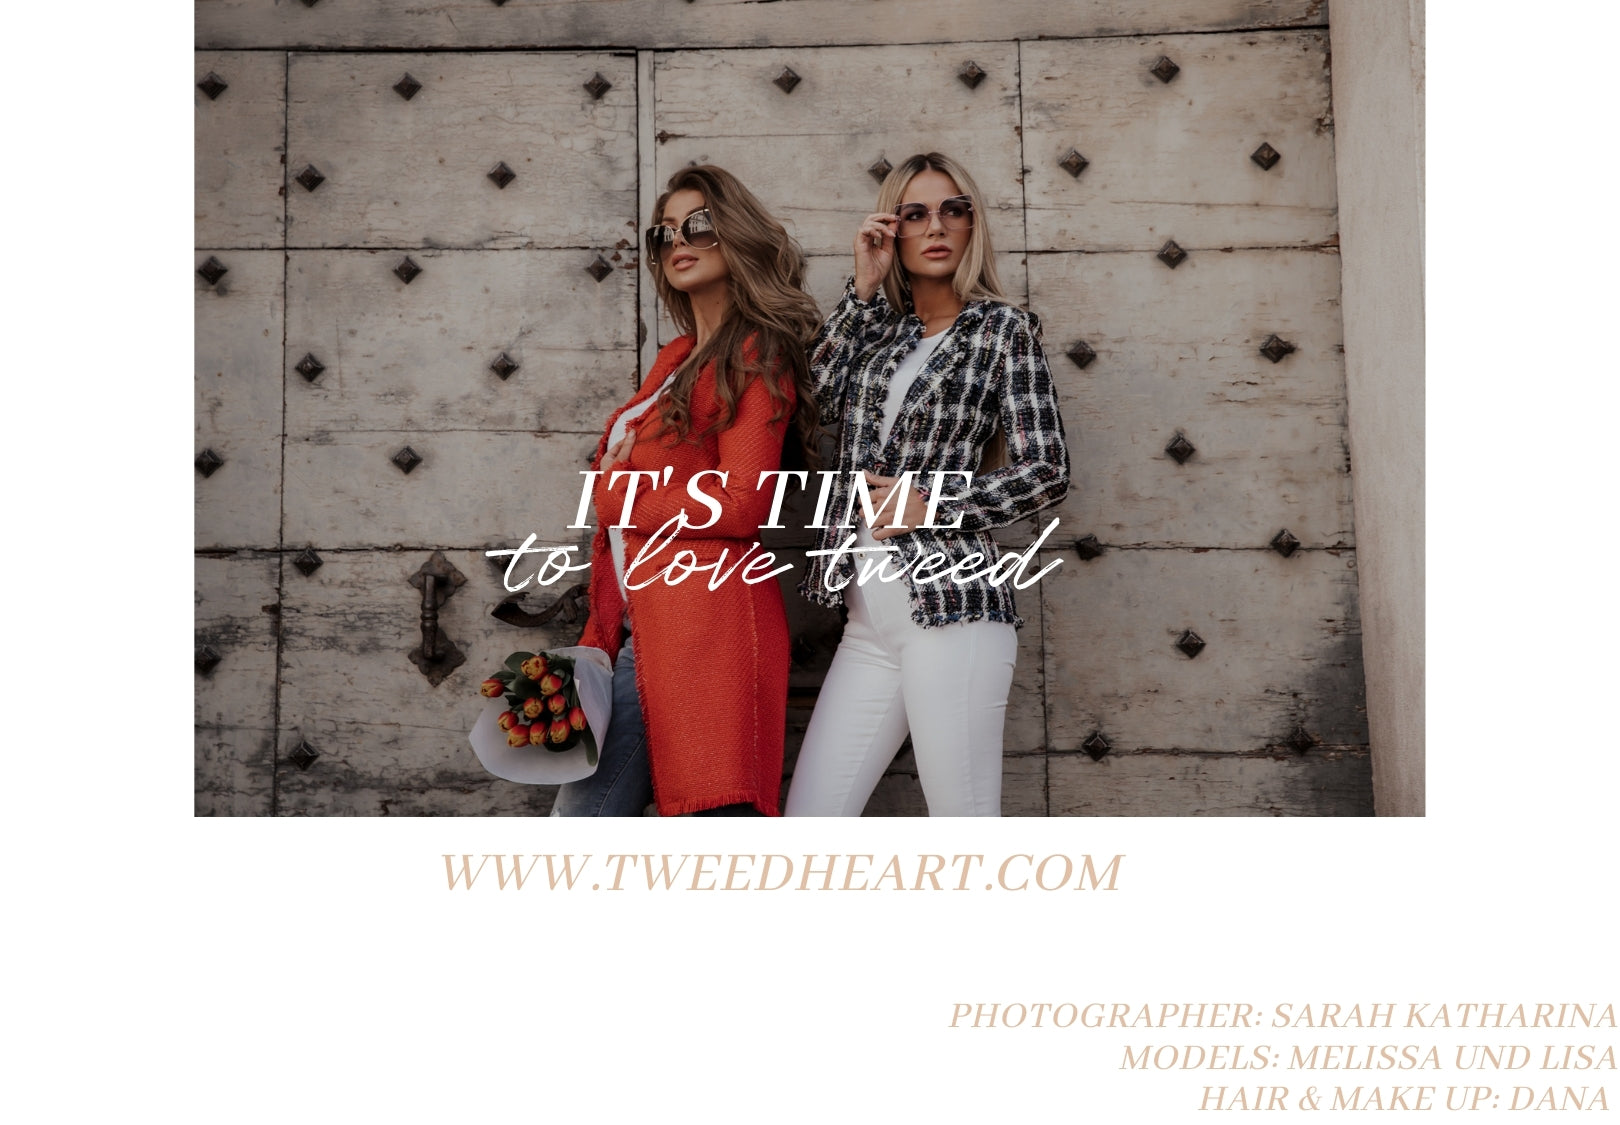 Time to love tweed